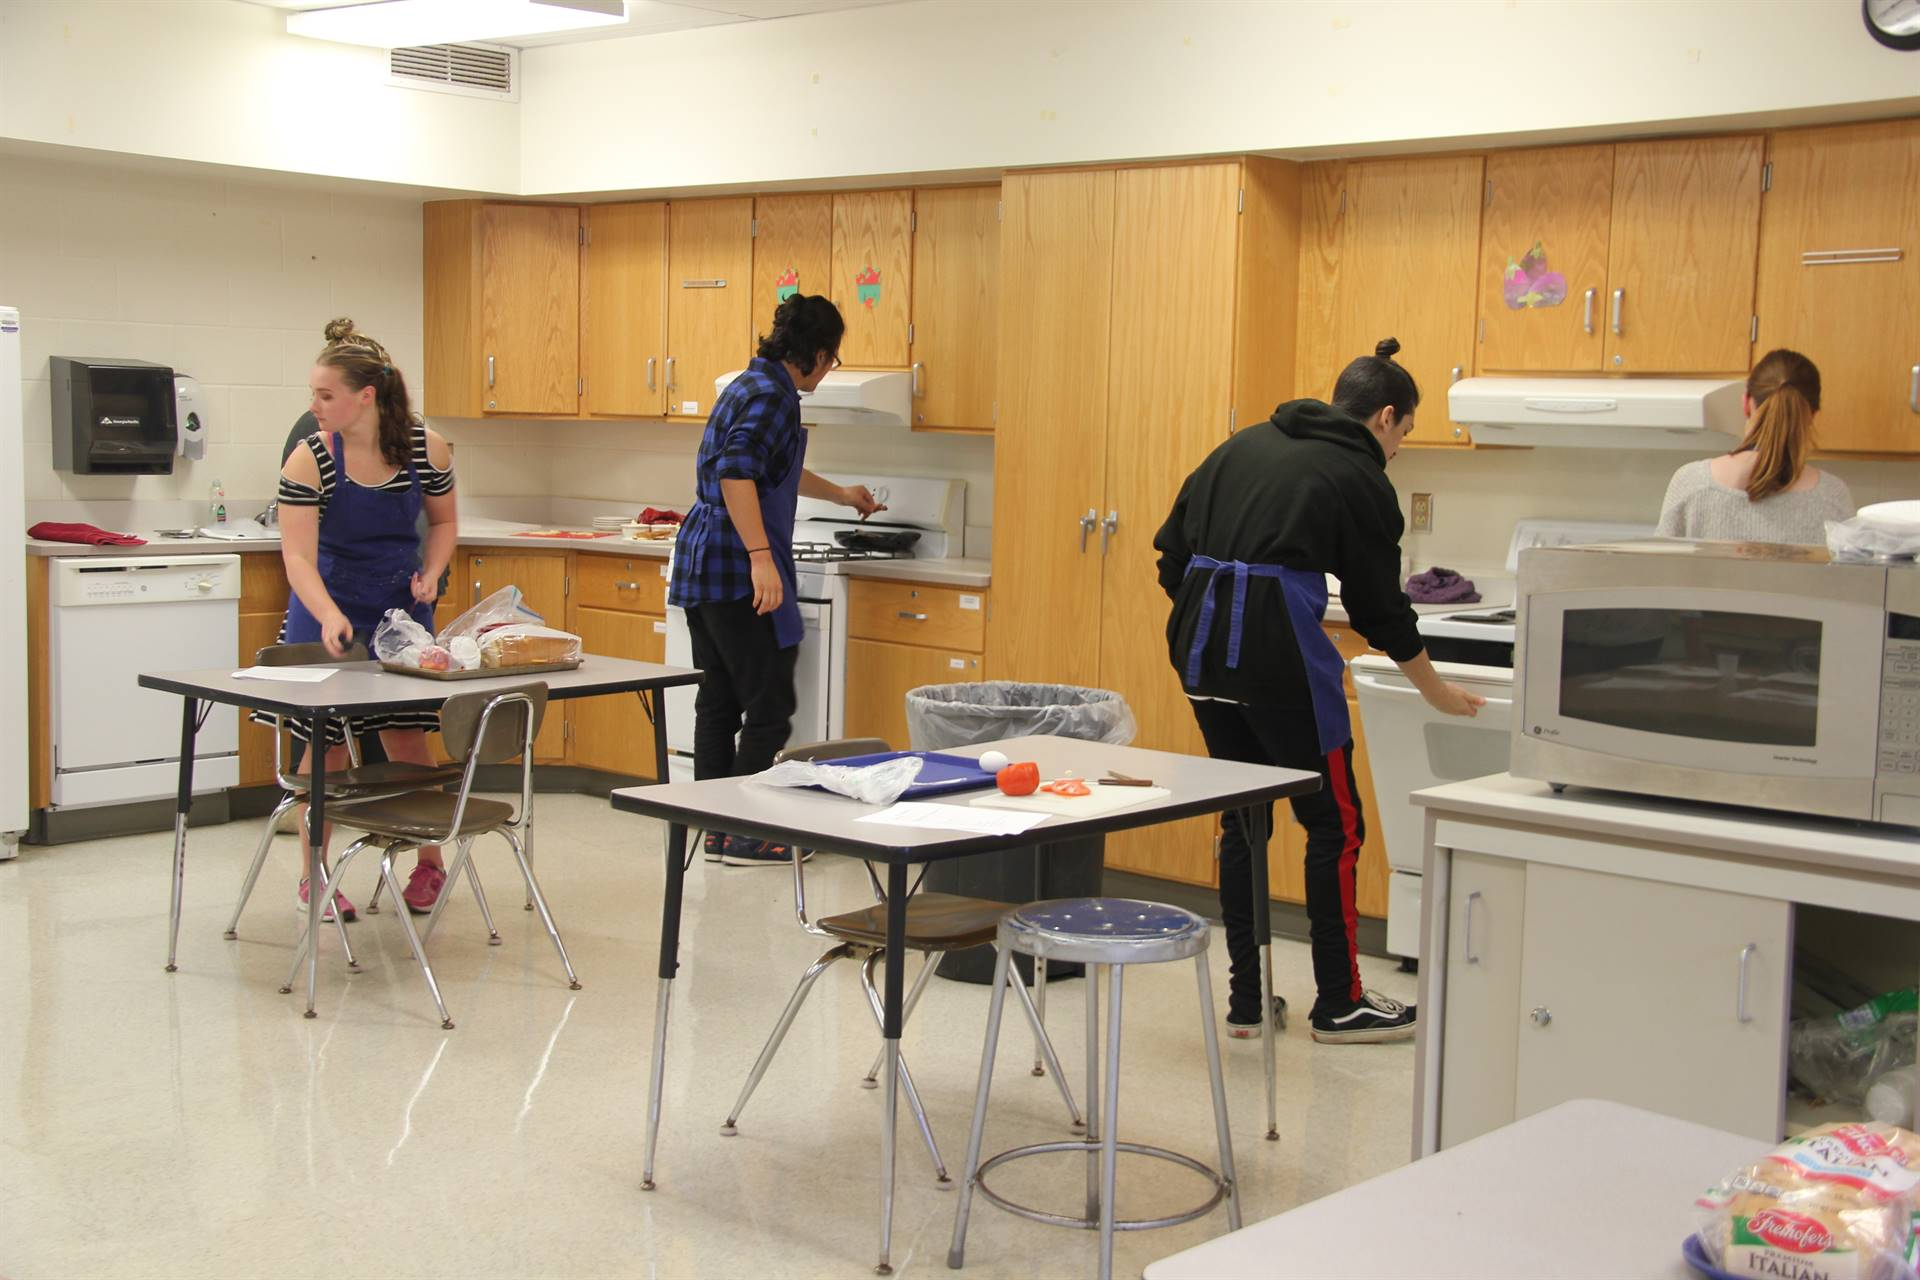 far shot of students making grilled cheese in the kitchen